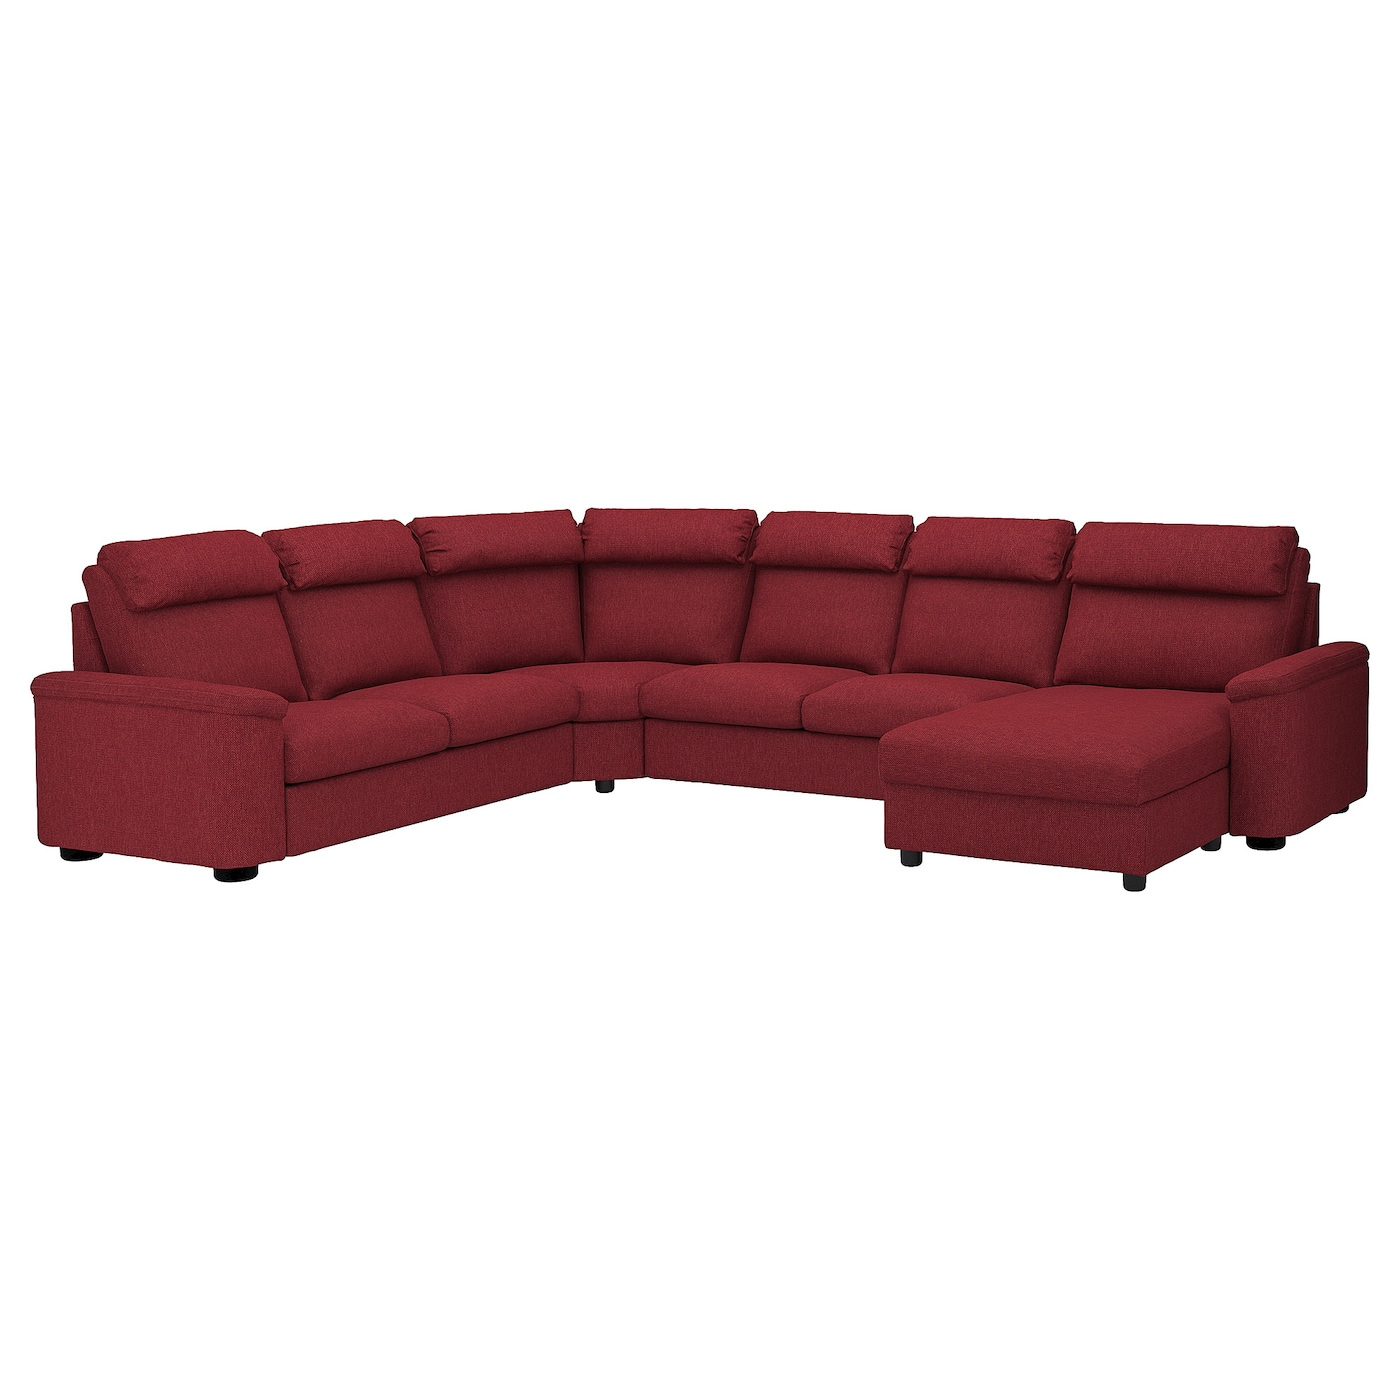 Ikea Lidhult Corner Sofa 6 Seat 10 Year Guarantee Read About The Terms